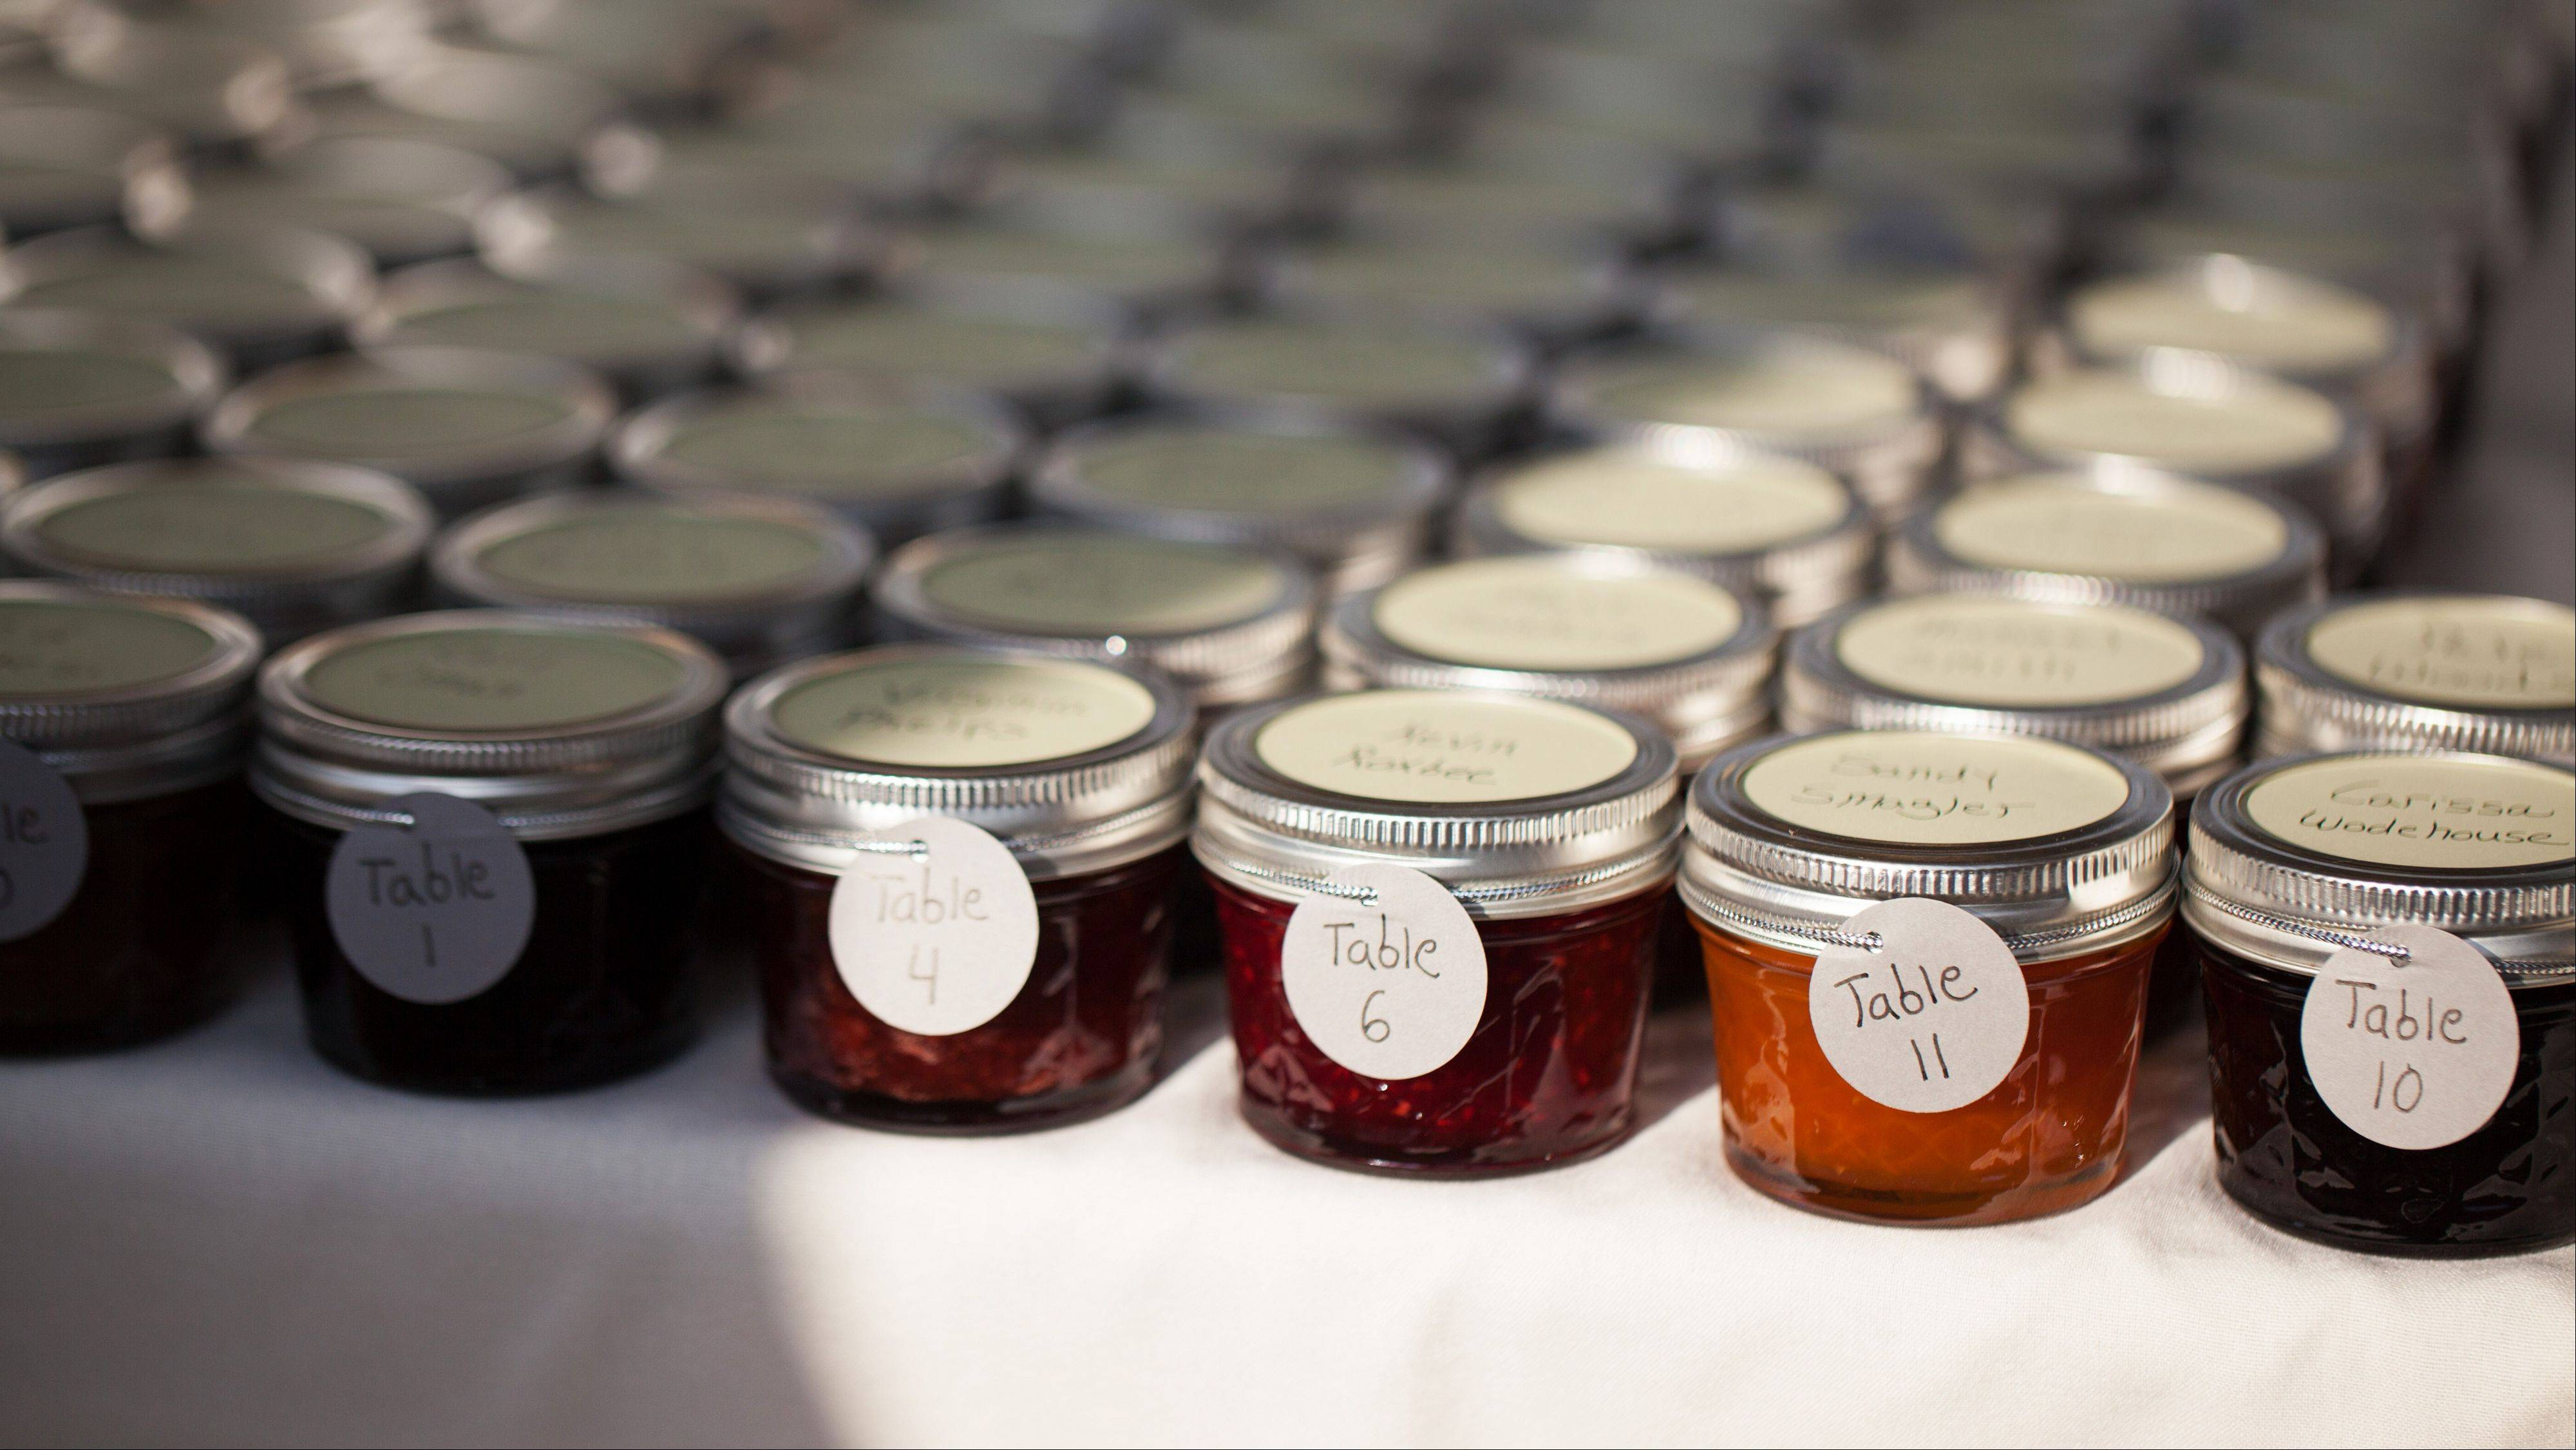 Homemade jam favors made by Jillian Simms for the guests at her wedding to Jason Simms. The favor, that little thank-you-for-coming gift, has risen to new heights with the bride and groom giving guests a wide range of favors that are meaningful to them.